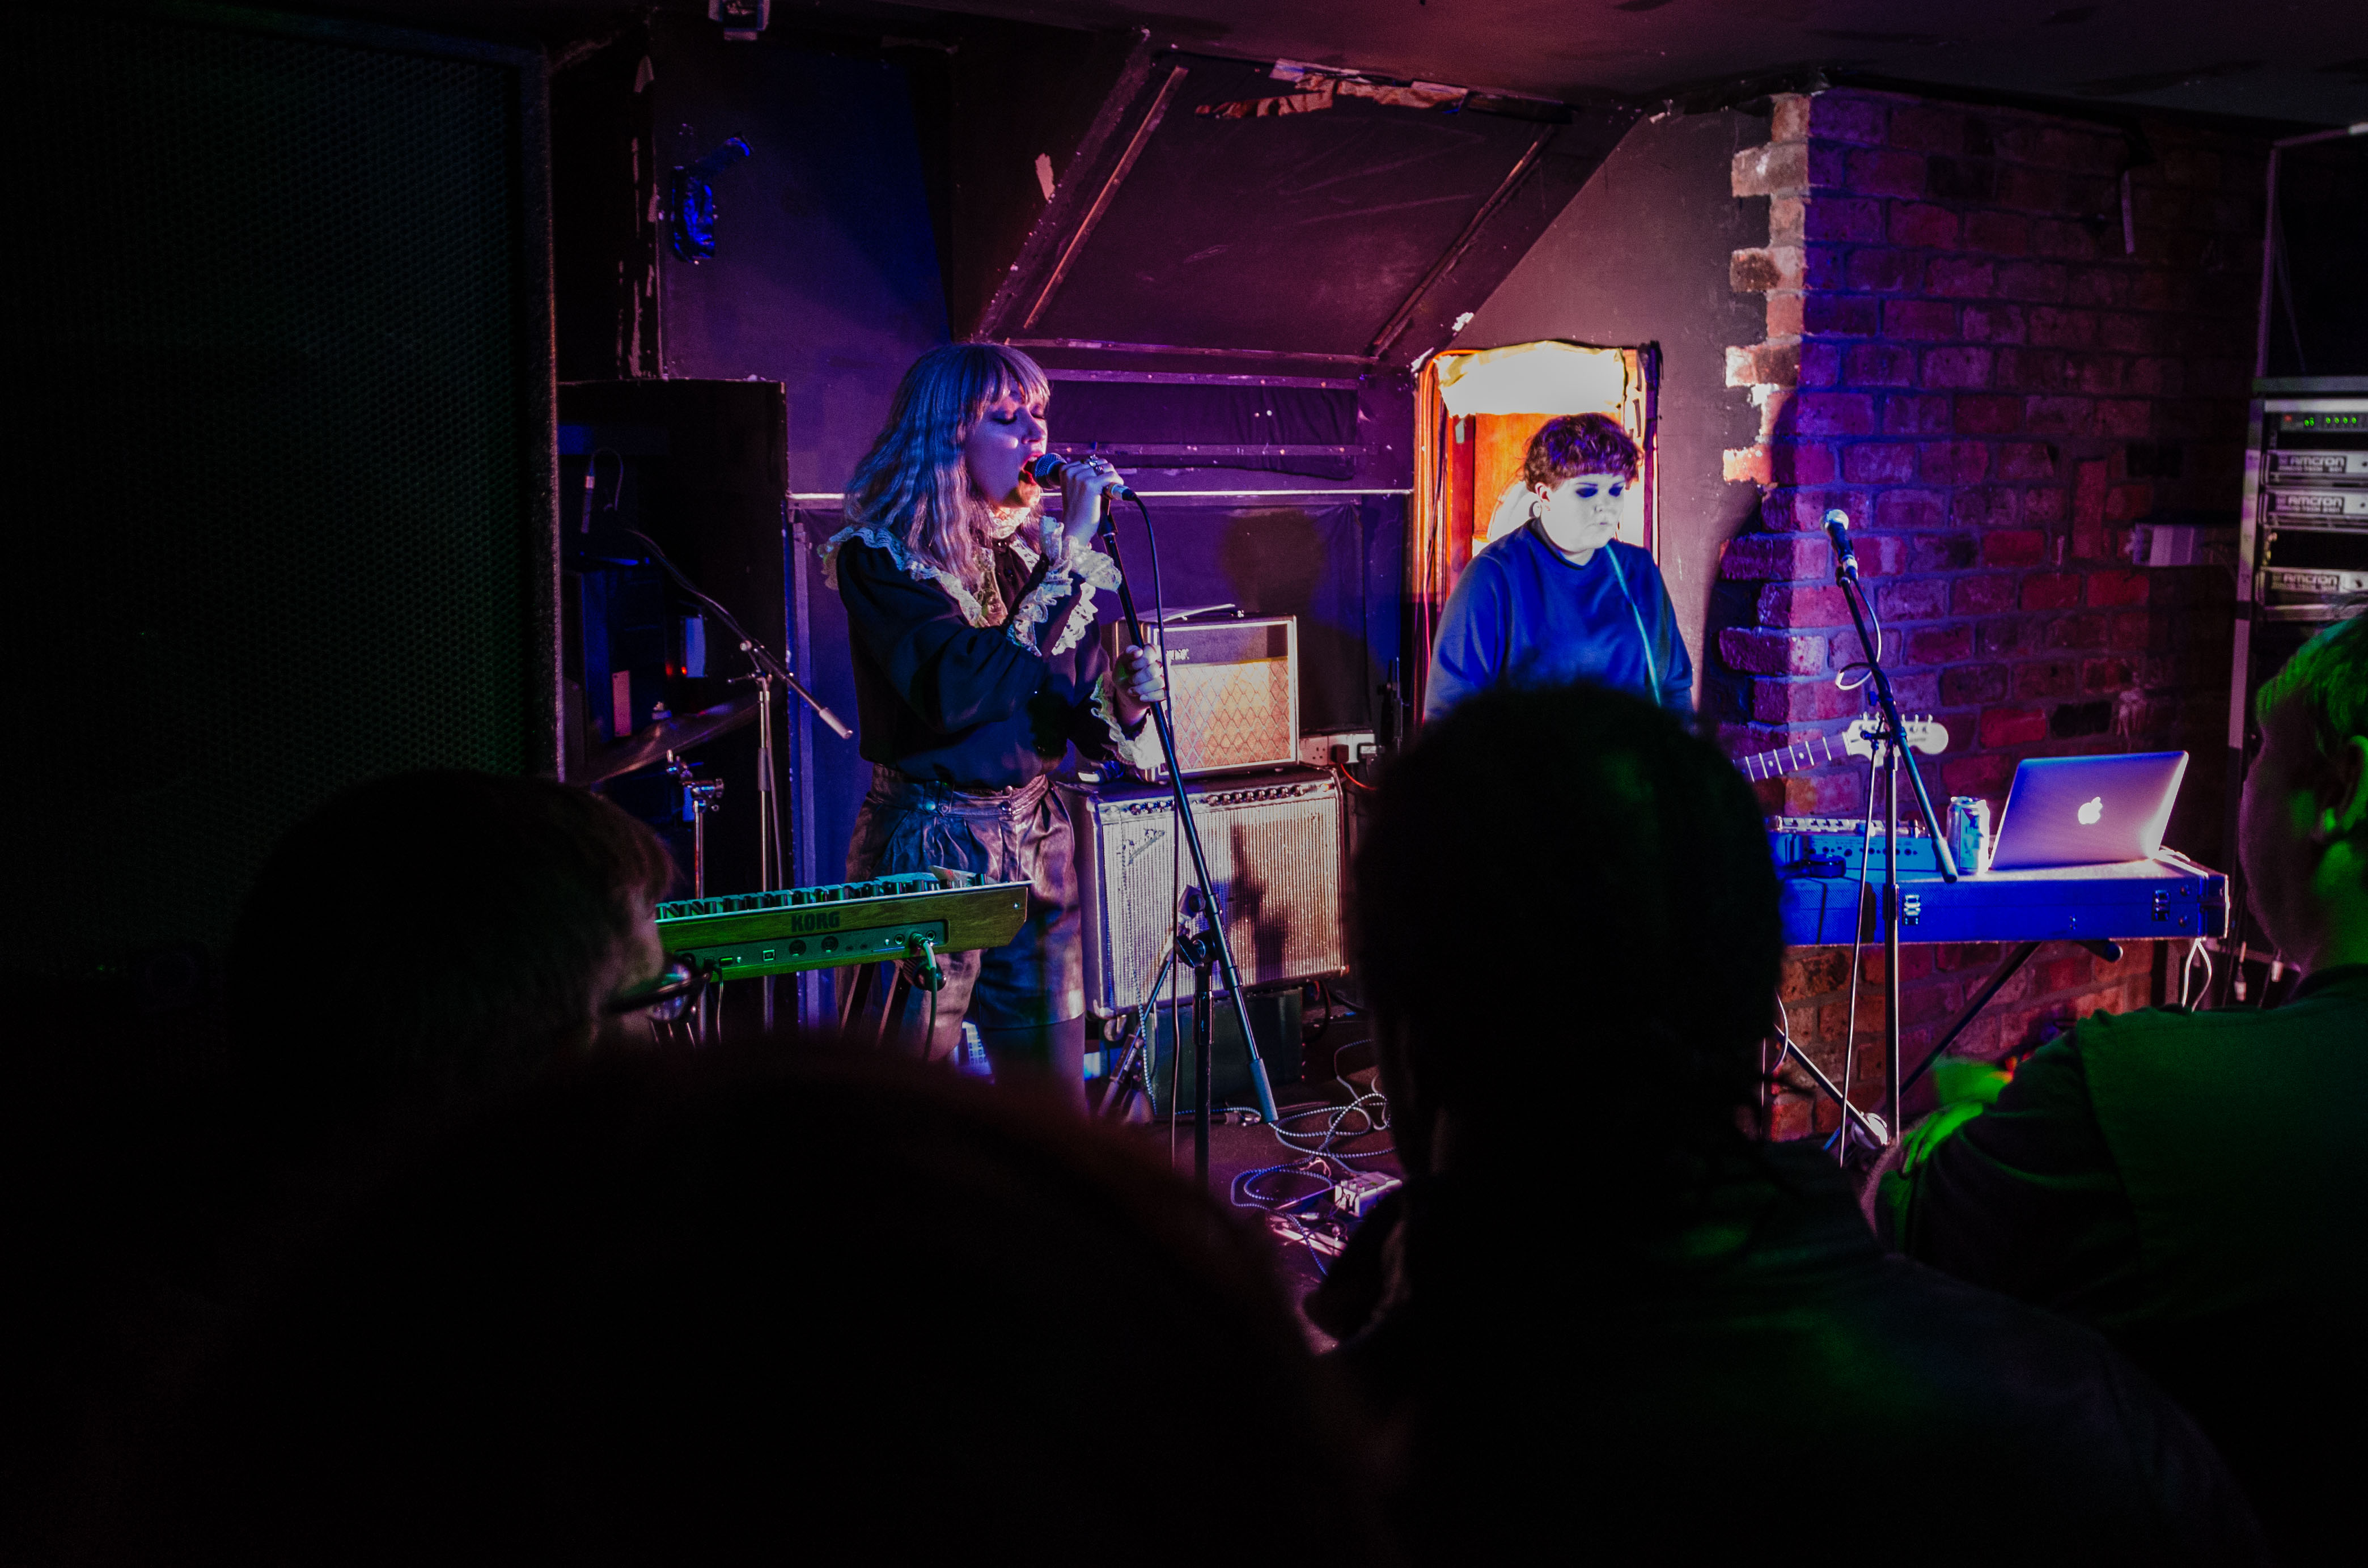 Marnie on stage at The Hug and Pint, Glasgow, for Celtic Connections on 27 January 2018